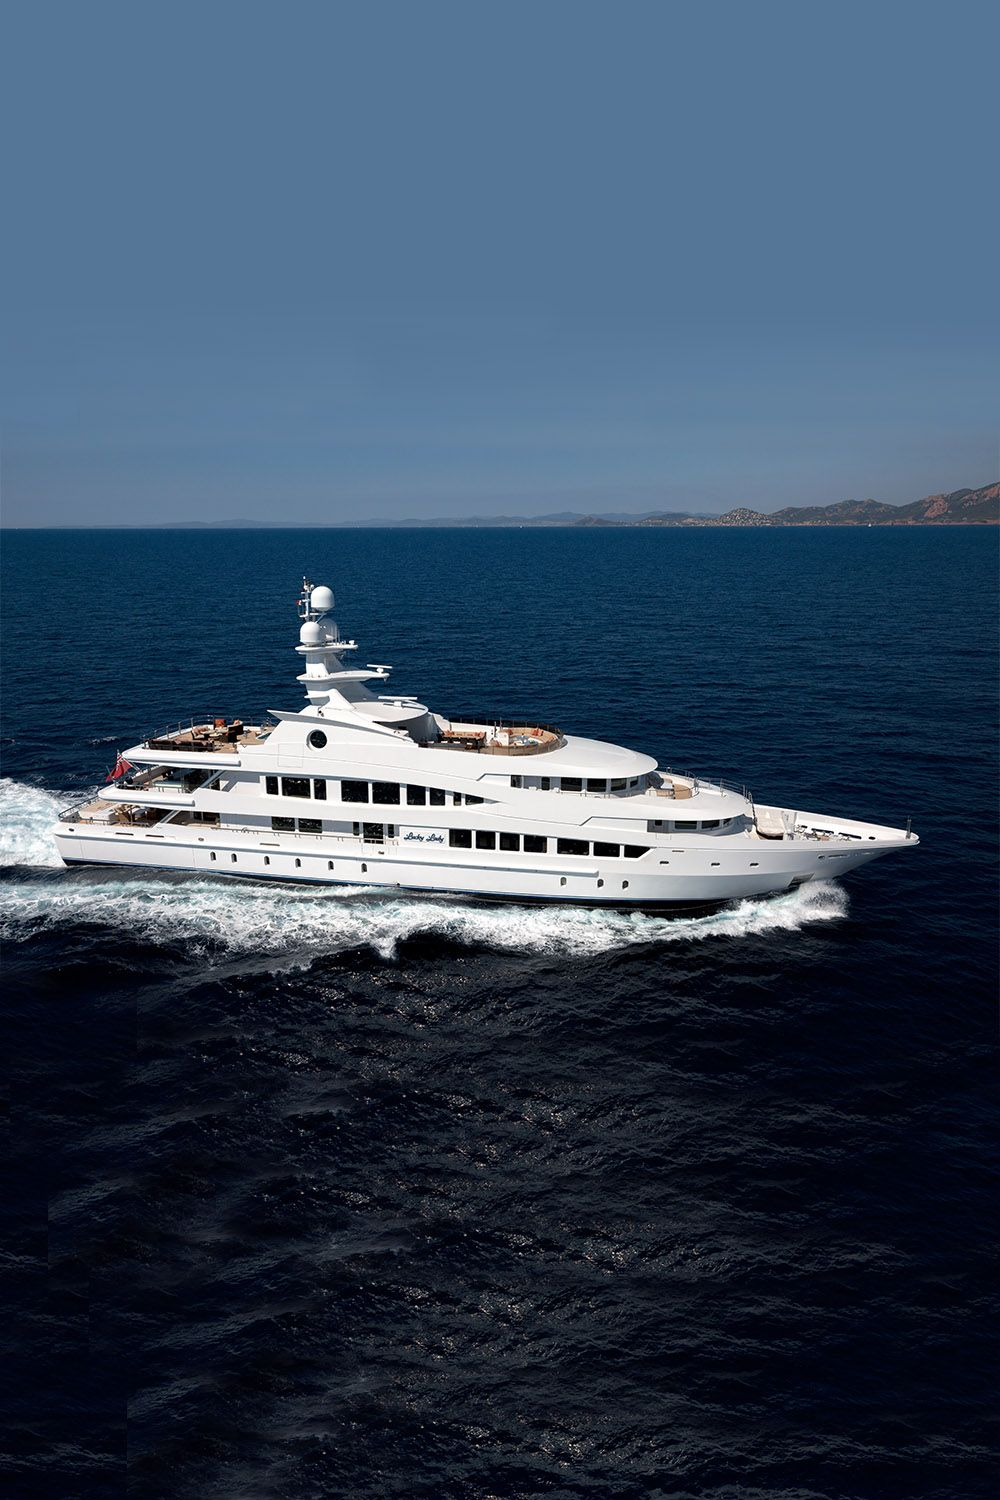 LUCKY LADY is an impeccably decorated yacht built for long range